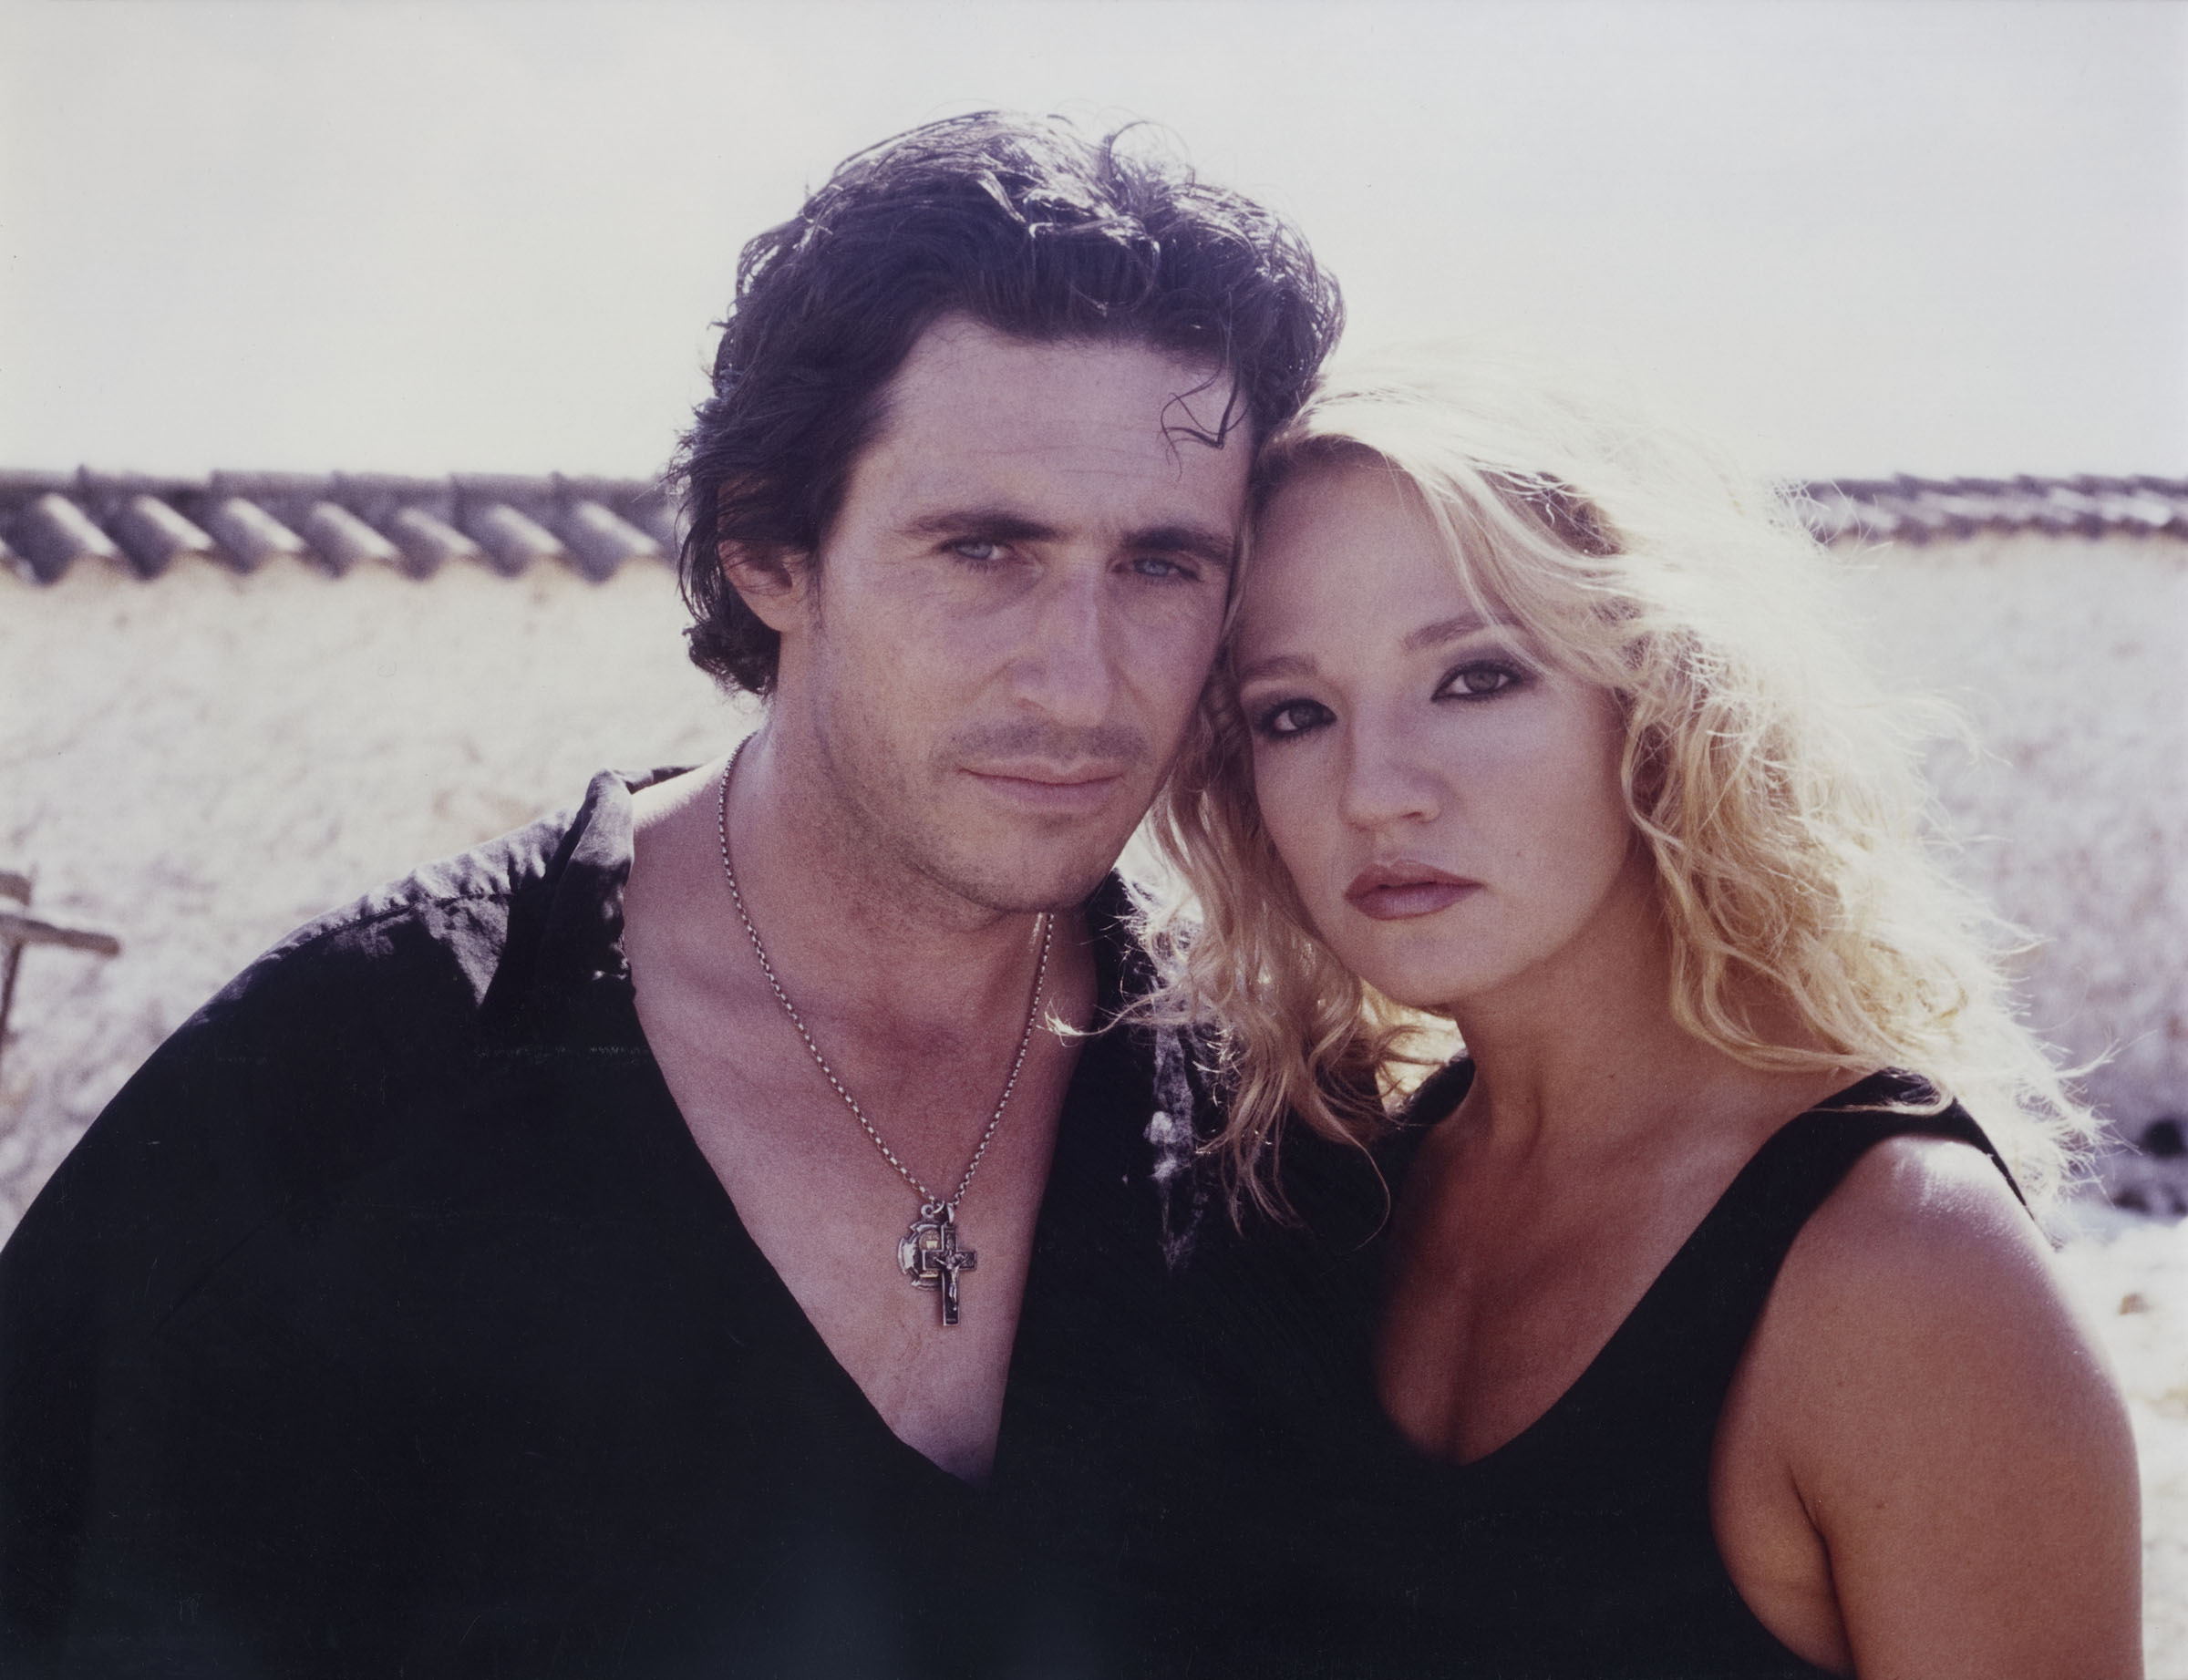 Ellen Barkin as Claire, a stunwoman passing through a series of strange adventures, and her Spanish lover Gabriel Byrne in Siesta (1987)